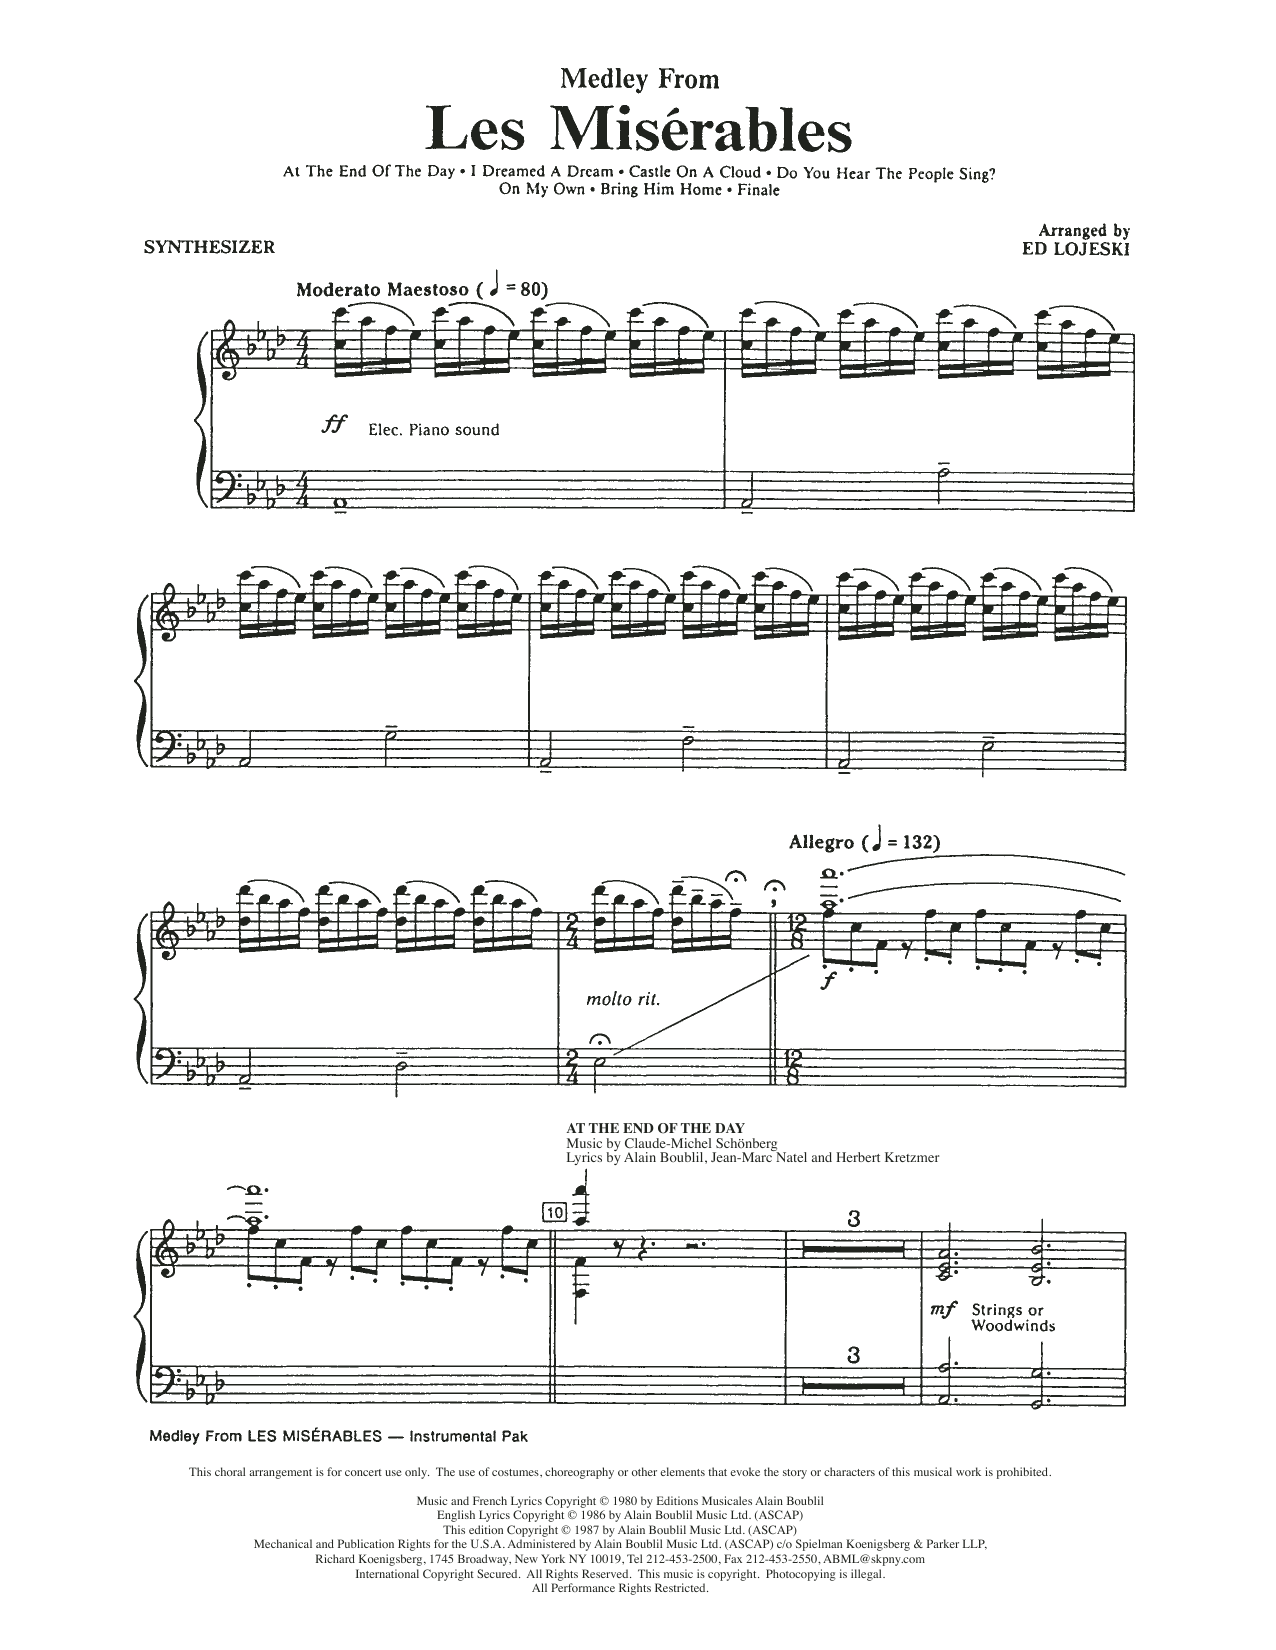 Les Miserables (Choral Medley) (complete set of parts) sheet music for orchestra/band (Rhythm) by Ed Lojeski, Alain Boublil, Claude-Michel Schonberg, Herbert Kretzmer and Jean-Marc Natel. Score Image Preview.